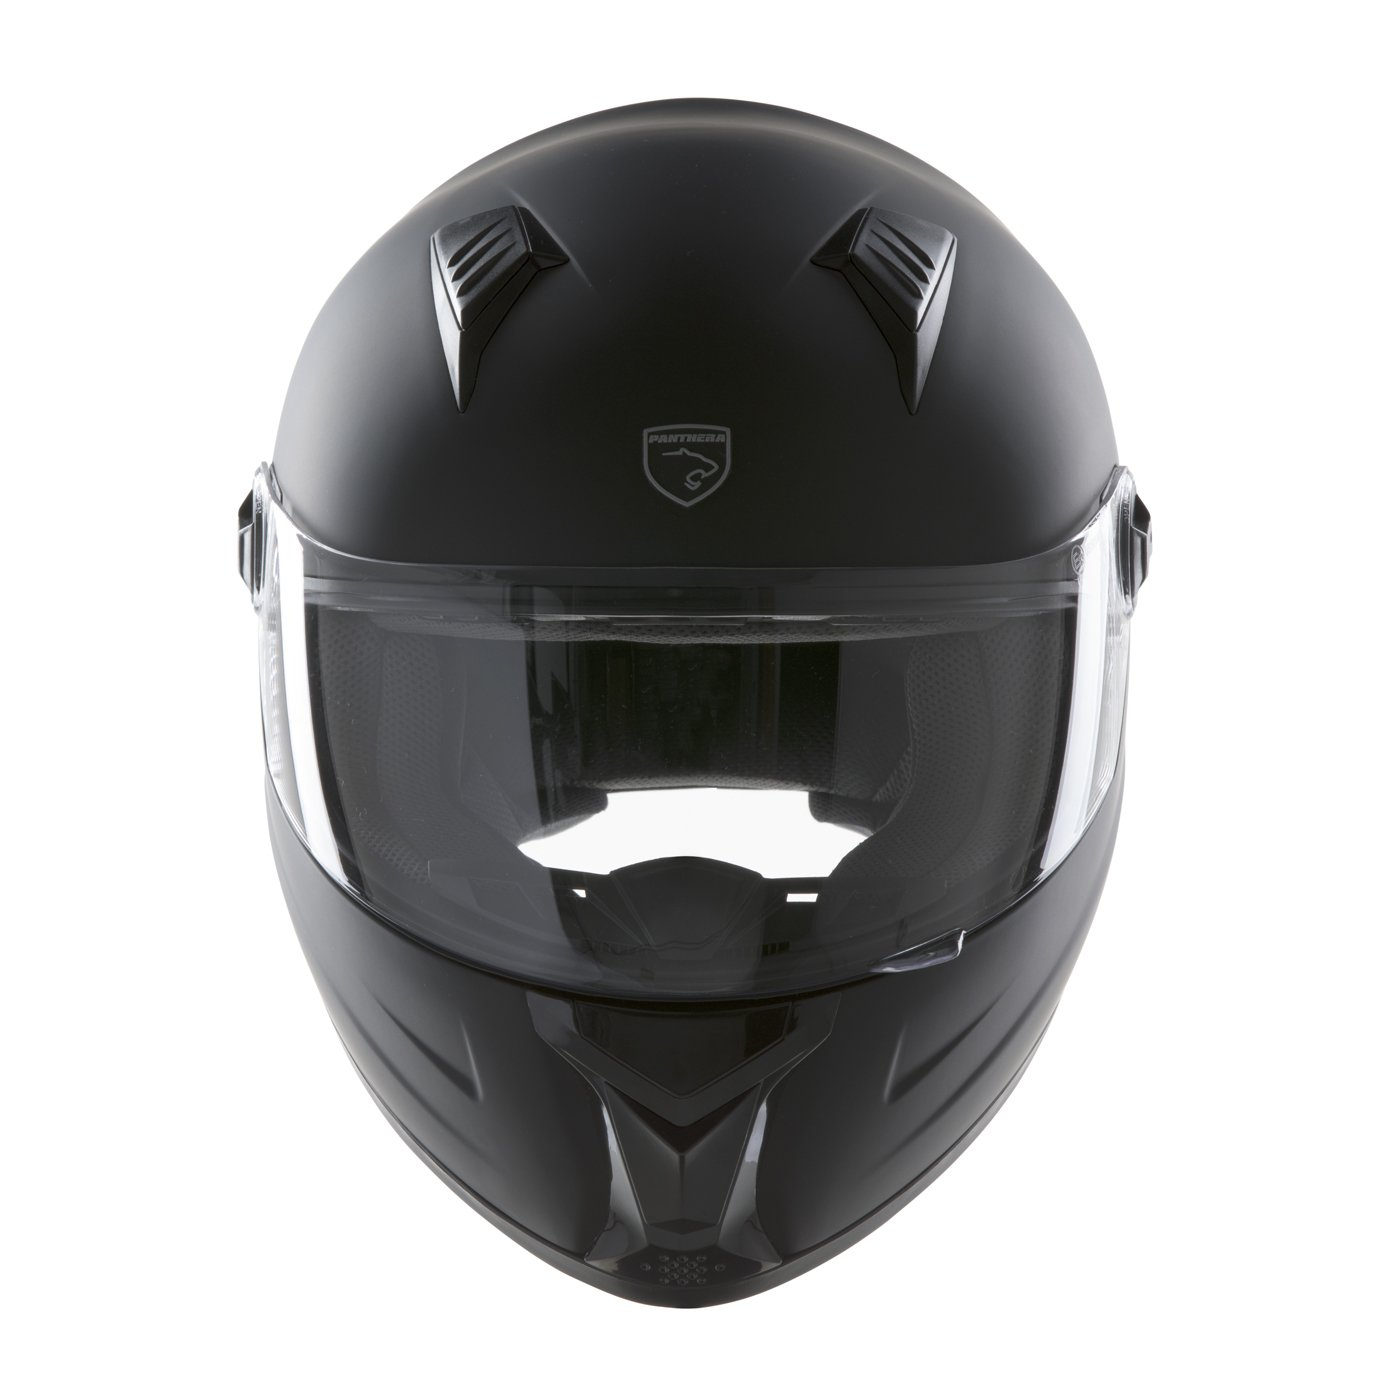 Panthera casco integrale Racer bianco lucente taille M